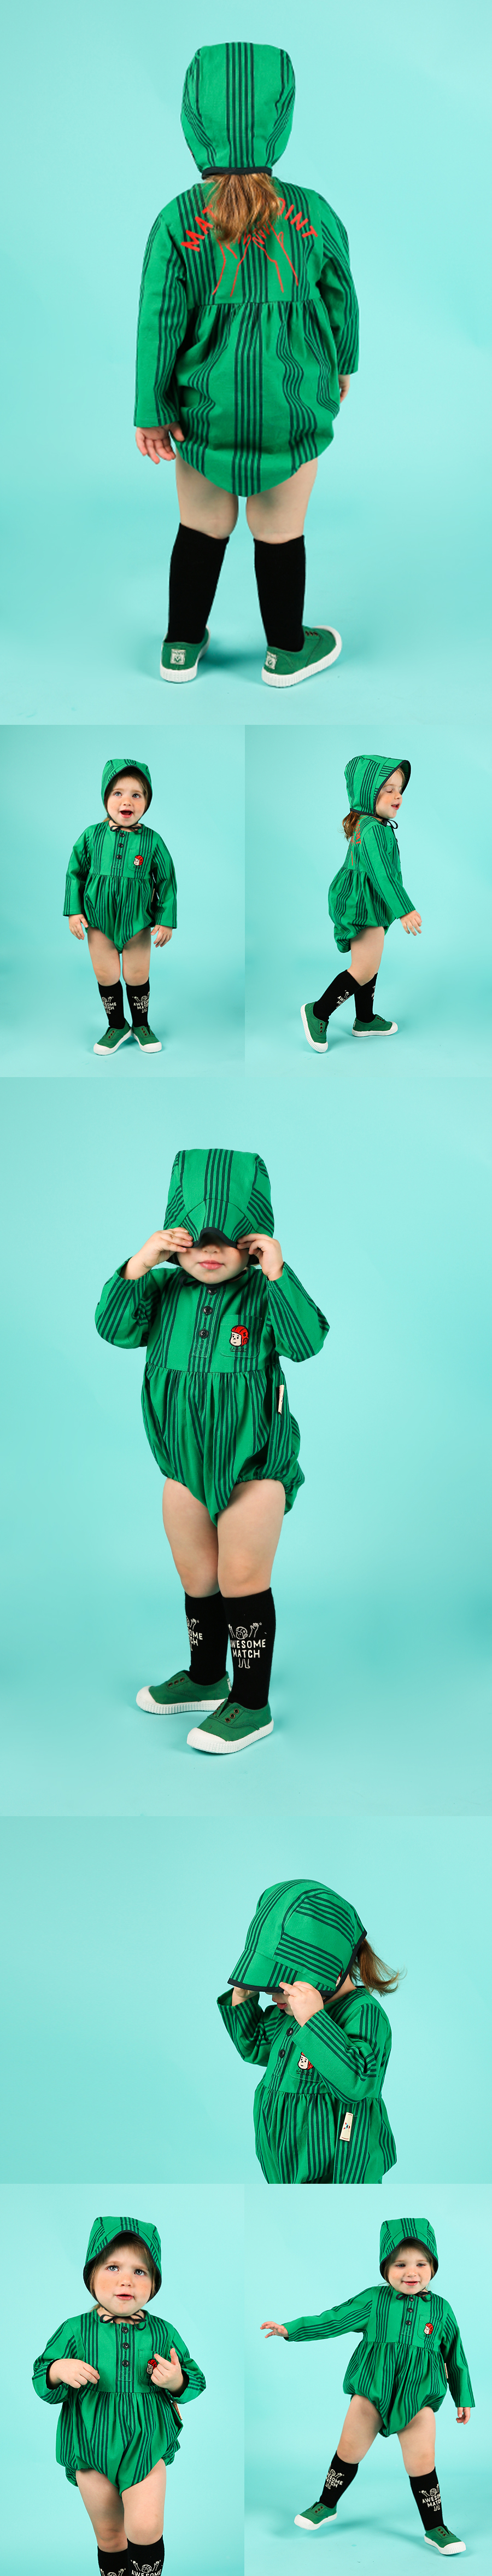 Match point baby stripe suit set 상세 이미지